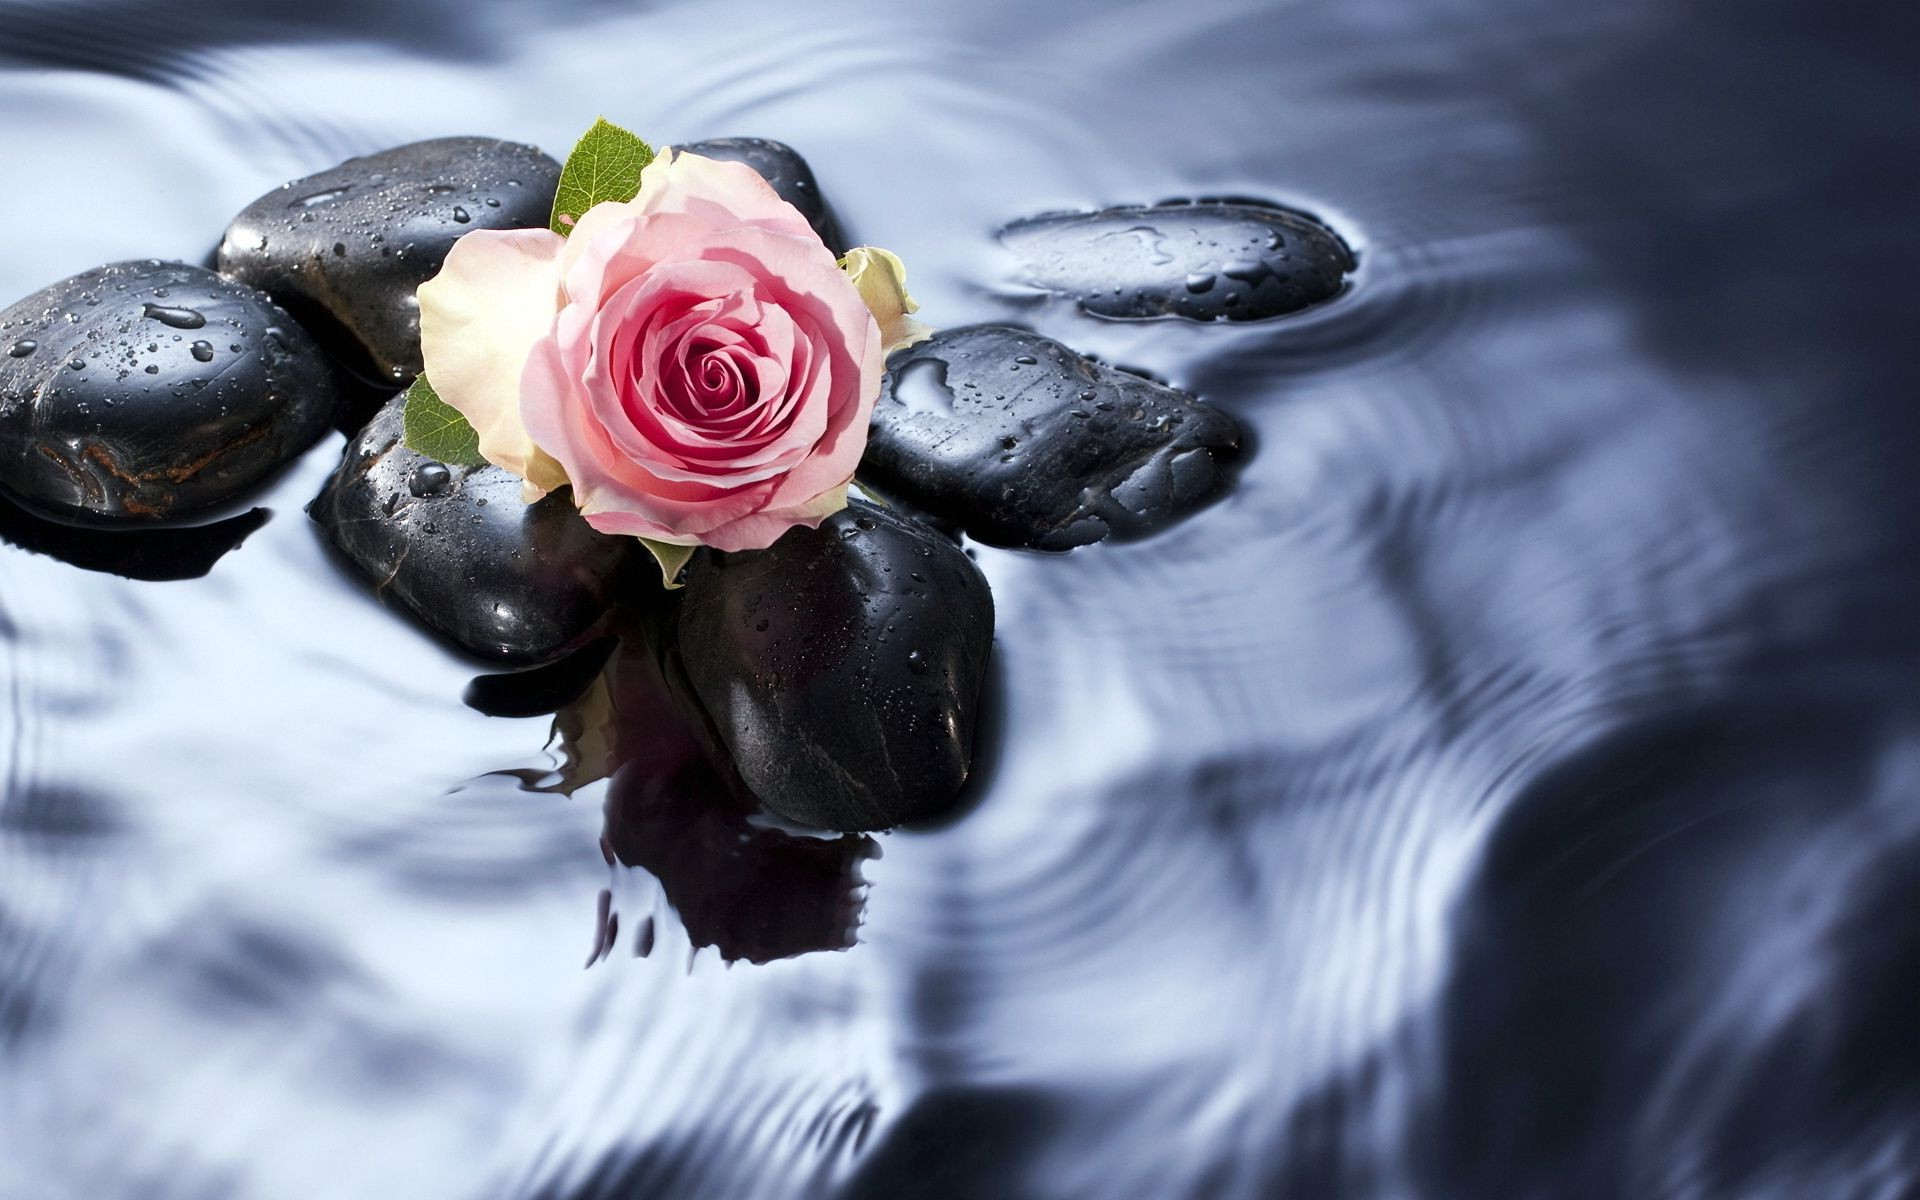 rose nature water zen drop beautiful flower wet love reflection food summer leaf meditation desktop purity